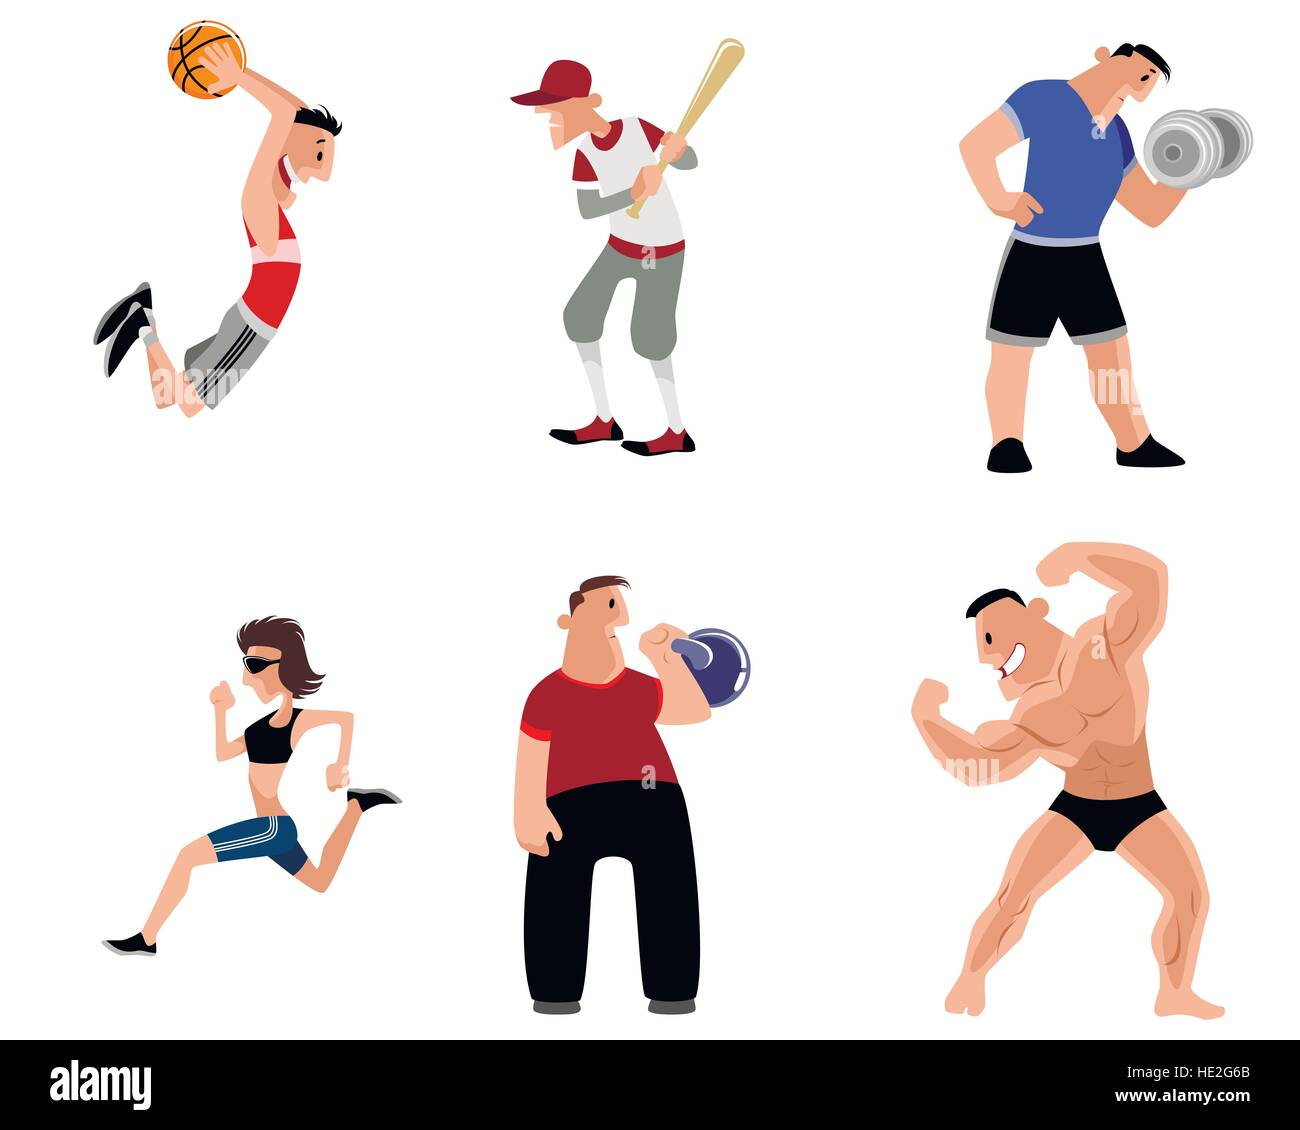 Vector illustration image of a six athletes set - Stock Vector